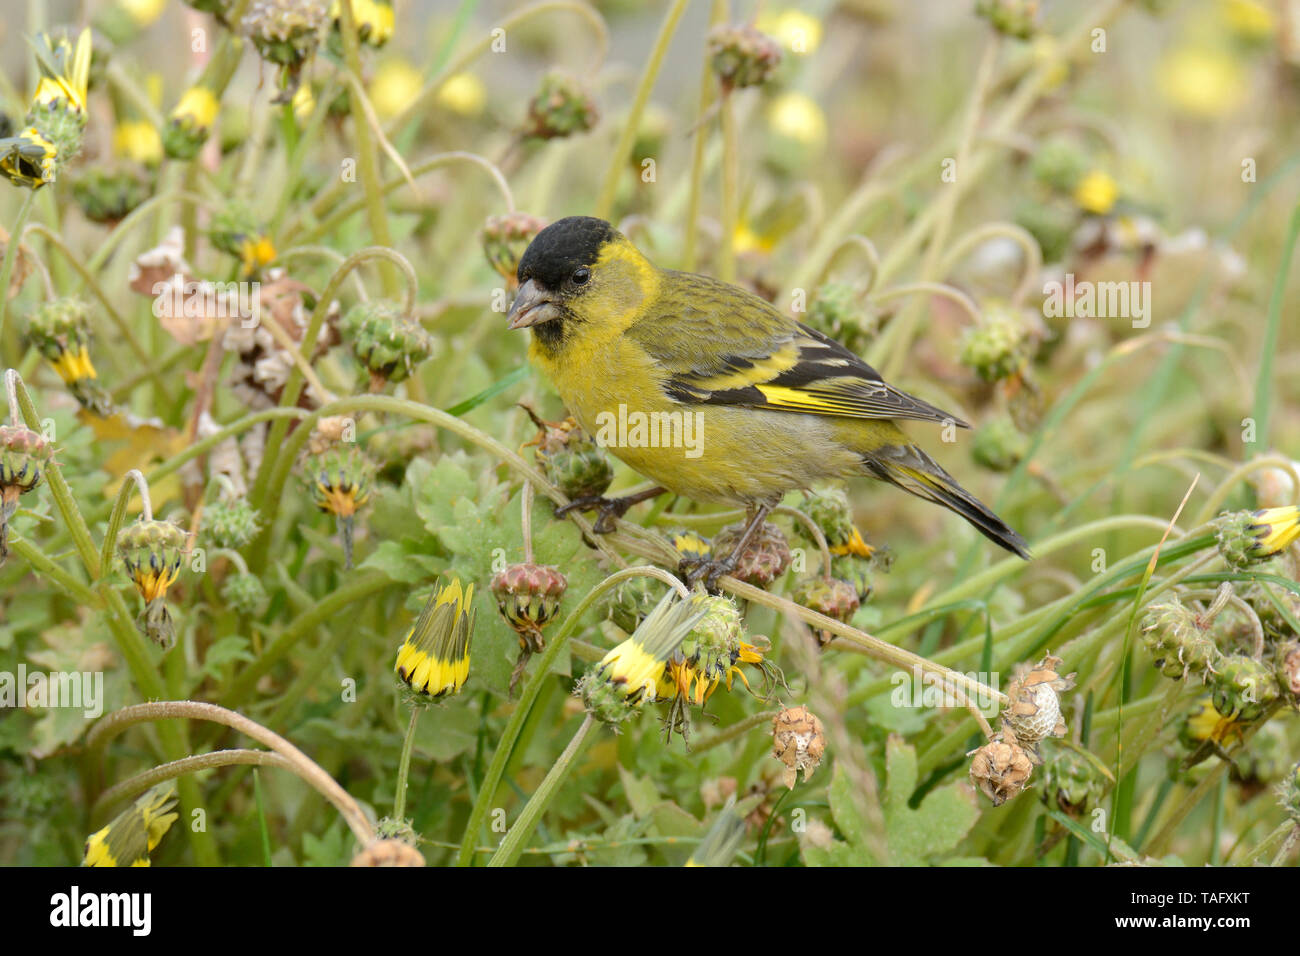 Black-chinned Siskin (Spinus barbatus), Fringillidae, male, Cobquecura, VIII Region of Biobío, Chile - Stock Image